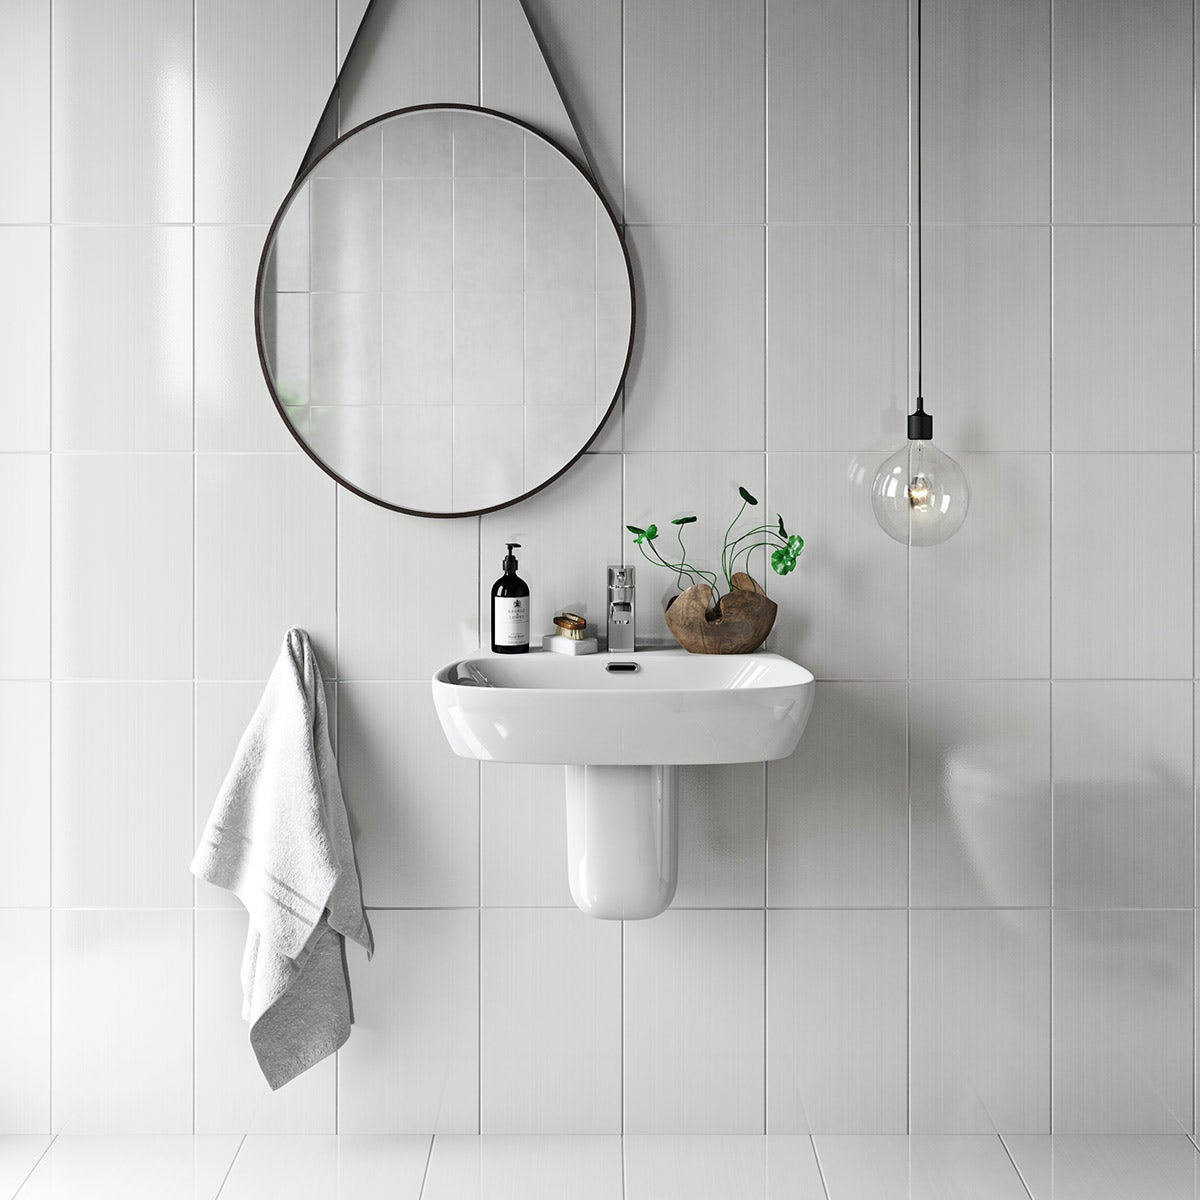 How To Put Up Tiles In A Bathroom: British Ceramic Tile Linear White Gloss Tile 248mm X 398mm